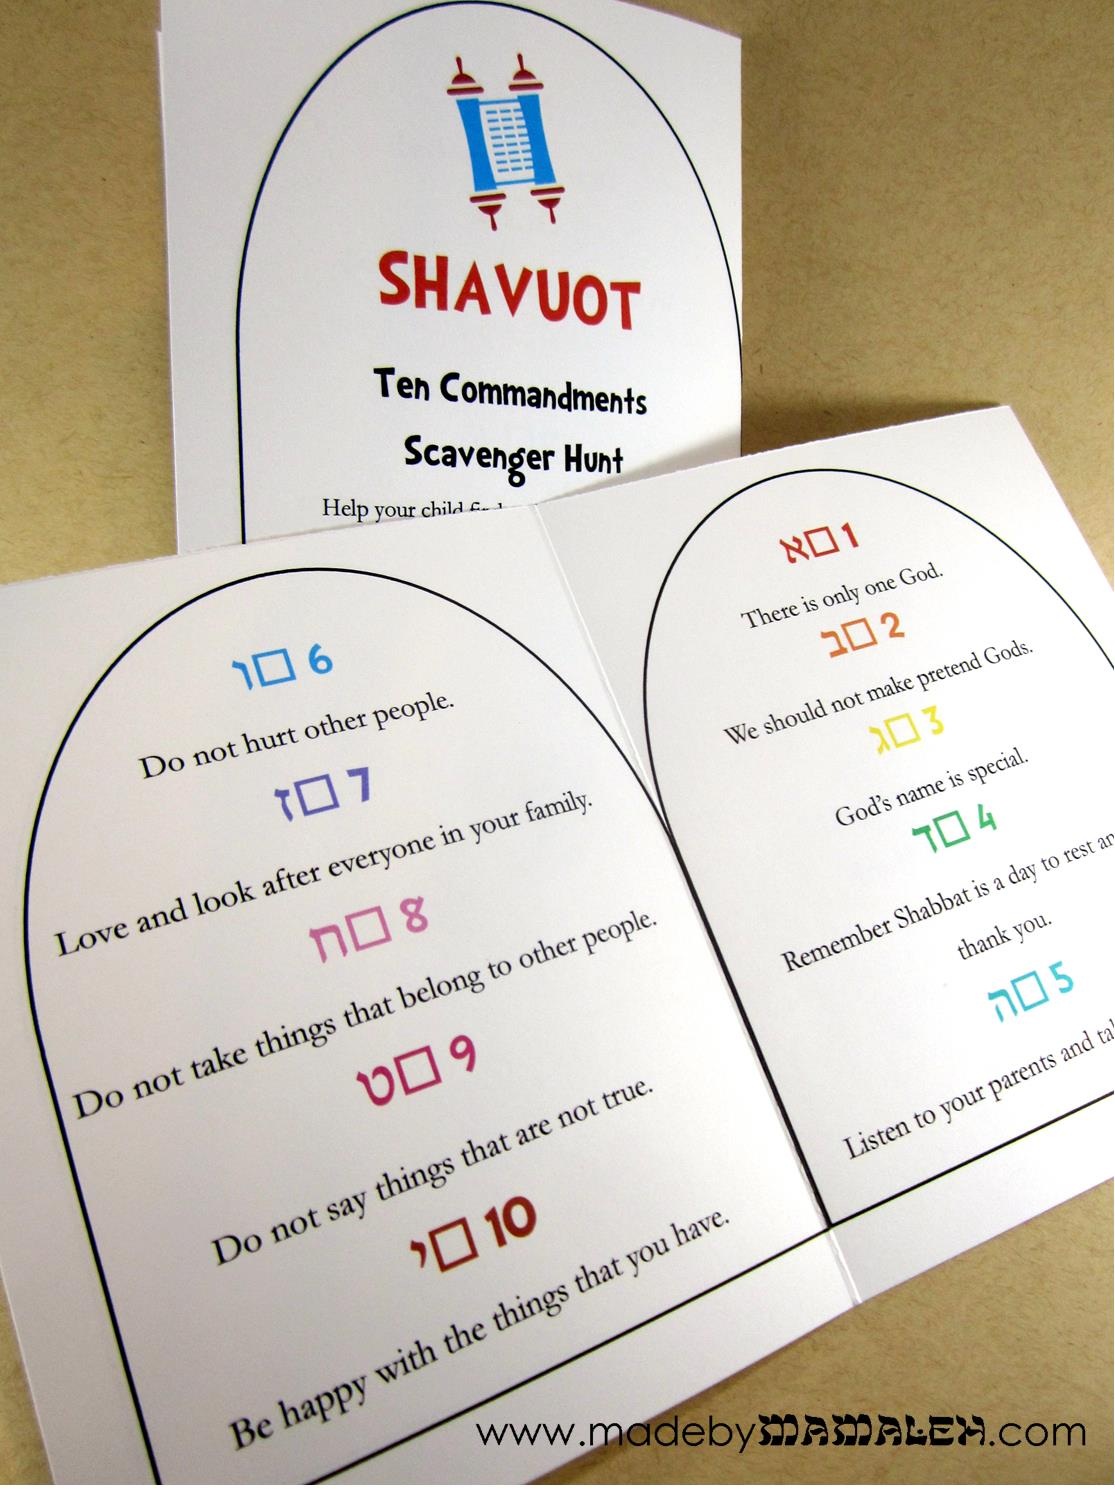 Ten Commandments Scavenger Hunt For Shavuot